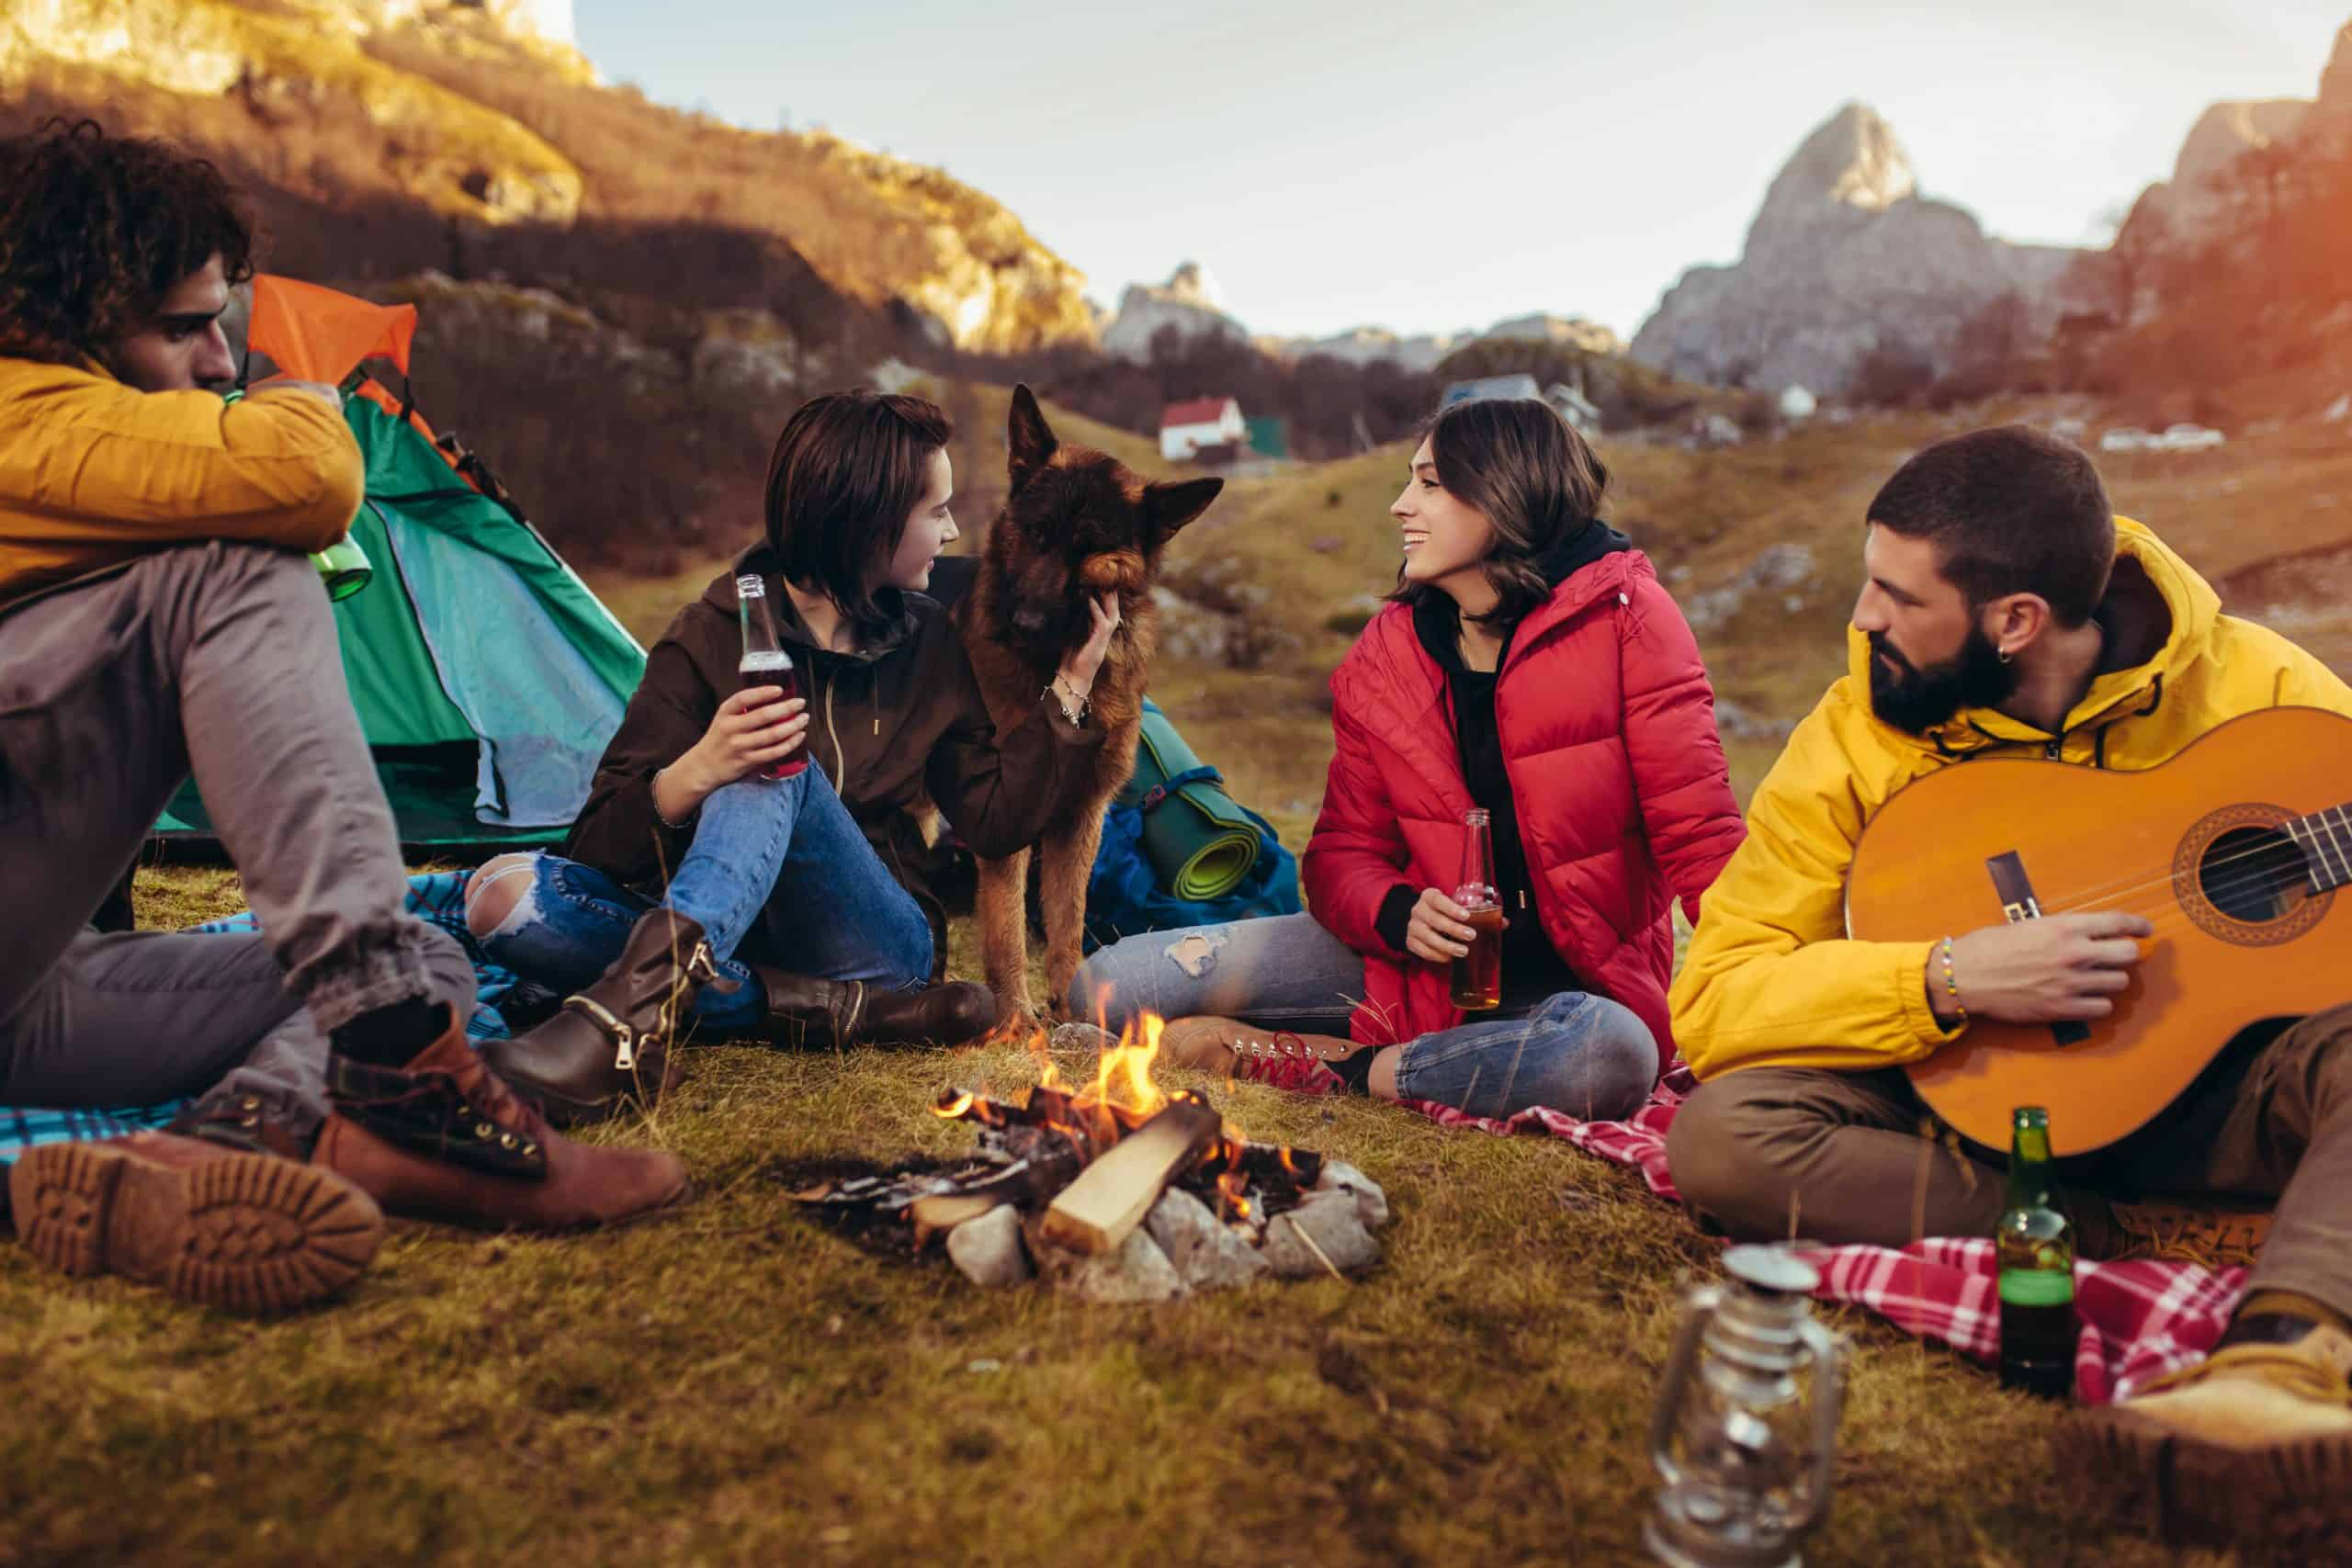 German Shepherd sits with a group of campers near a campfire. German Shepherds make great camping companions. The dogs are territorial and protective, so there they won't let anyone into your tent uninvited.